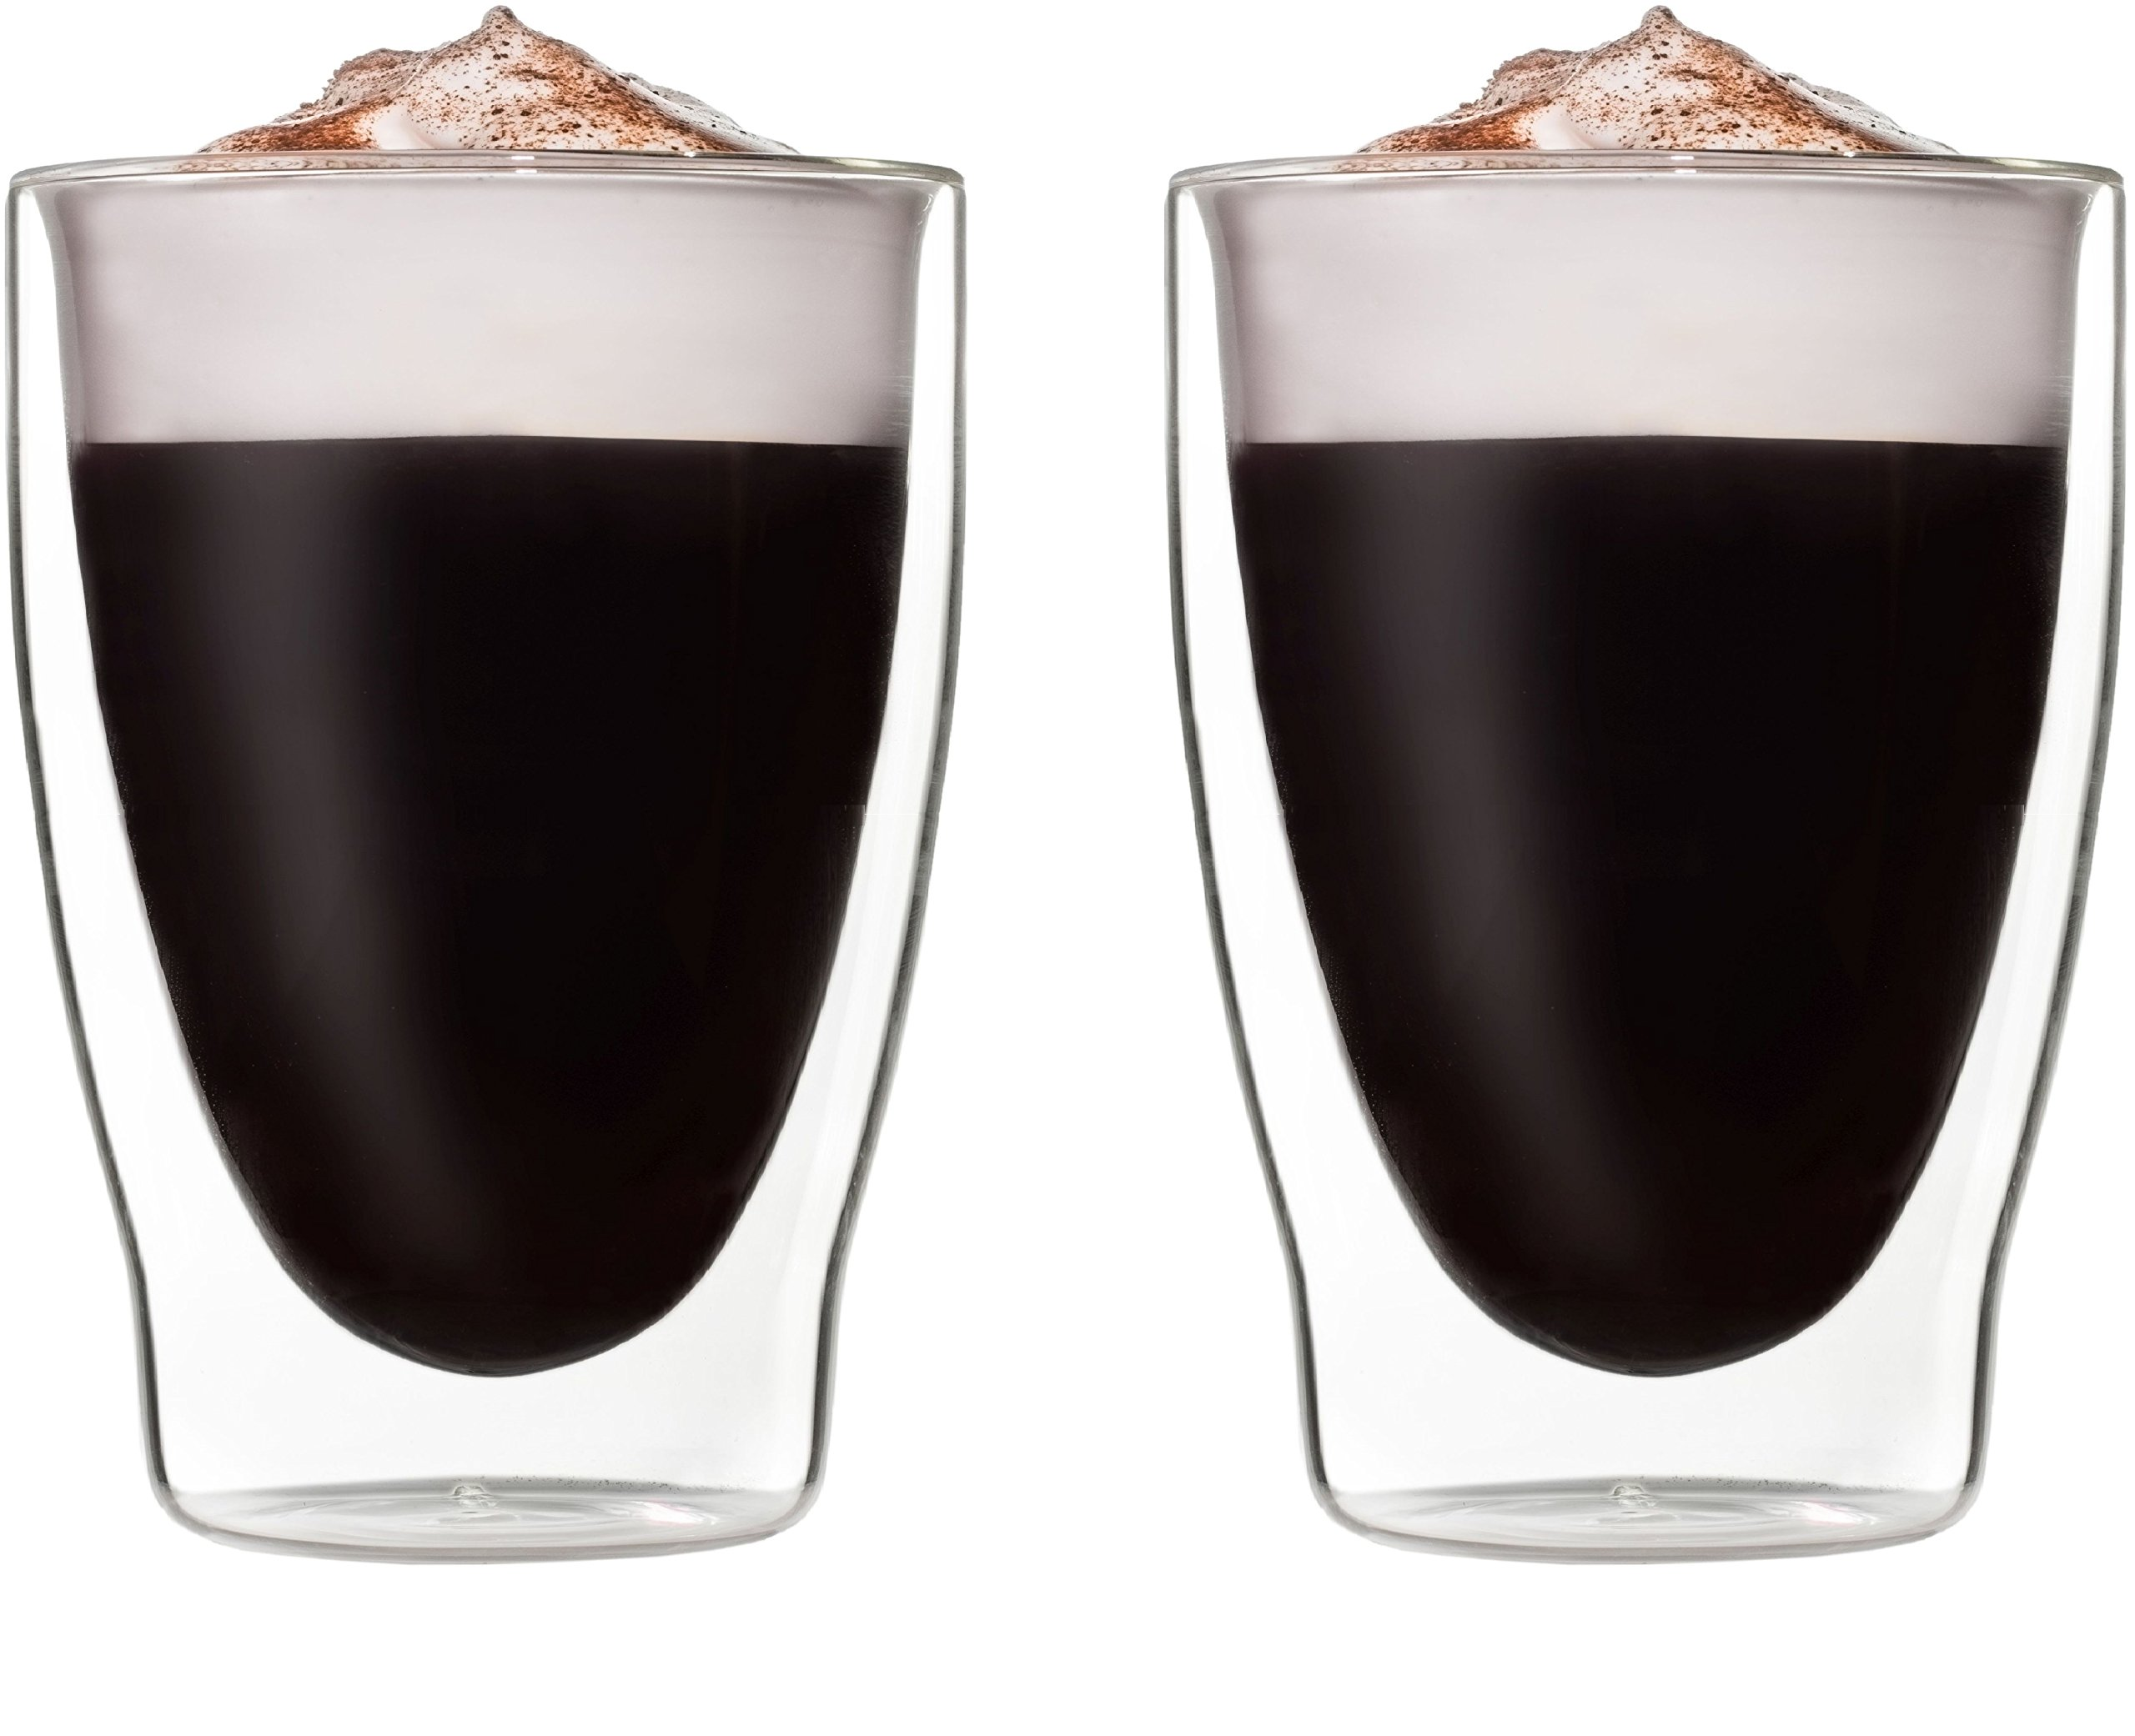 Circleware Thermax Double Wall Insulated Glass Latte Tea & Coffee Mugs, Set of 2 Beverage Drinking Glasses Cups, 10.1 oz.